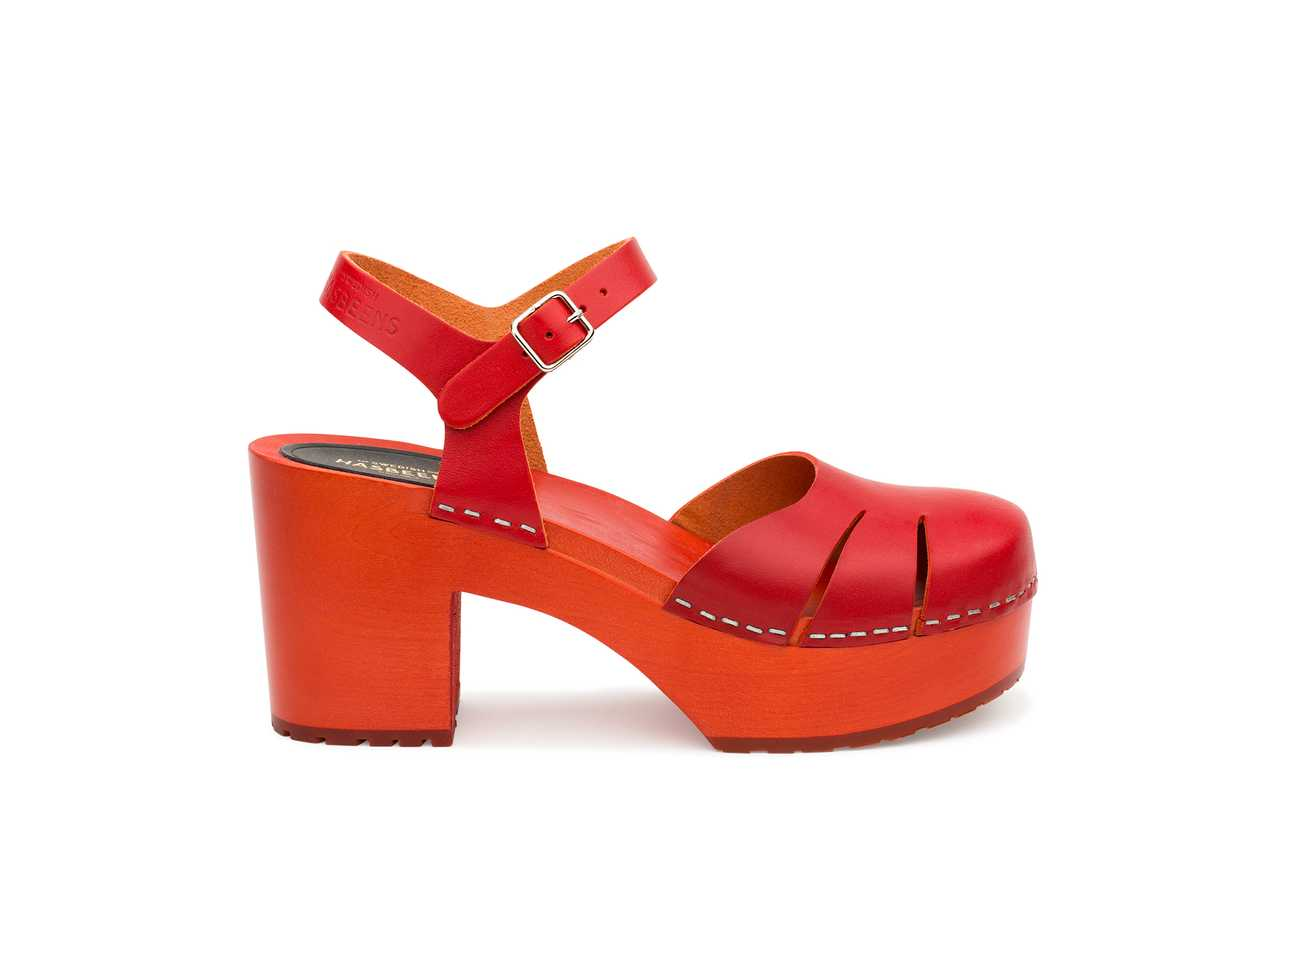 Baskemölla Sandal Red/red Sole